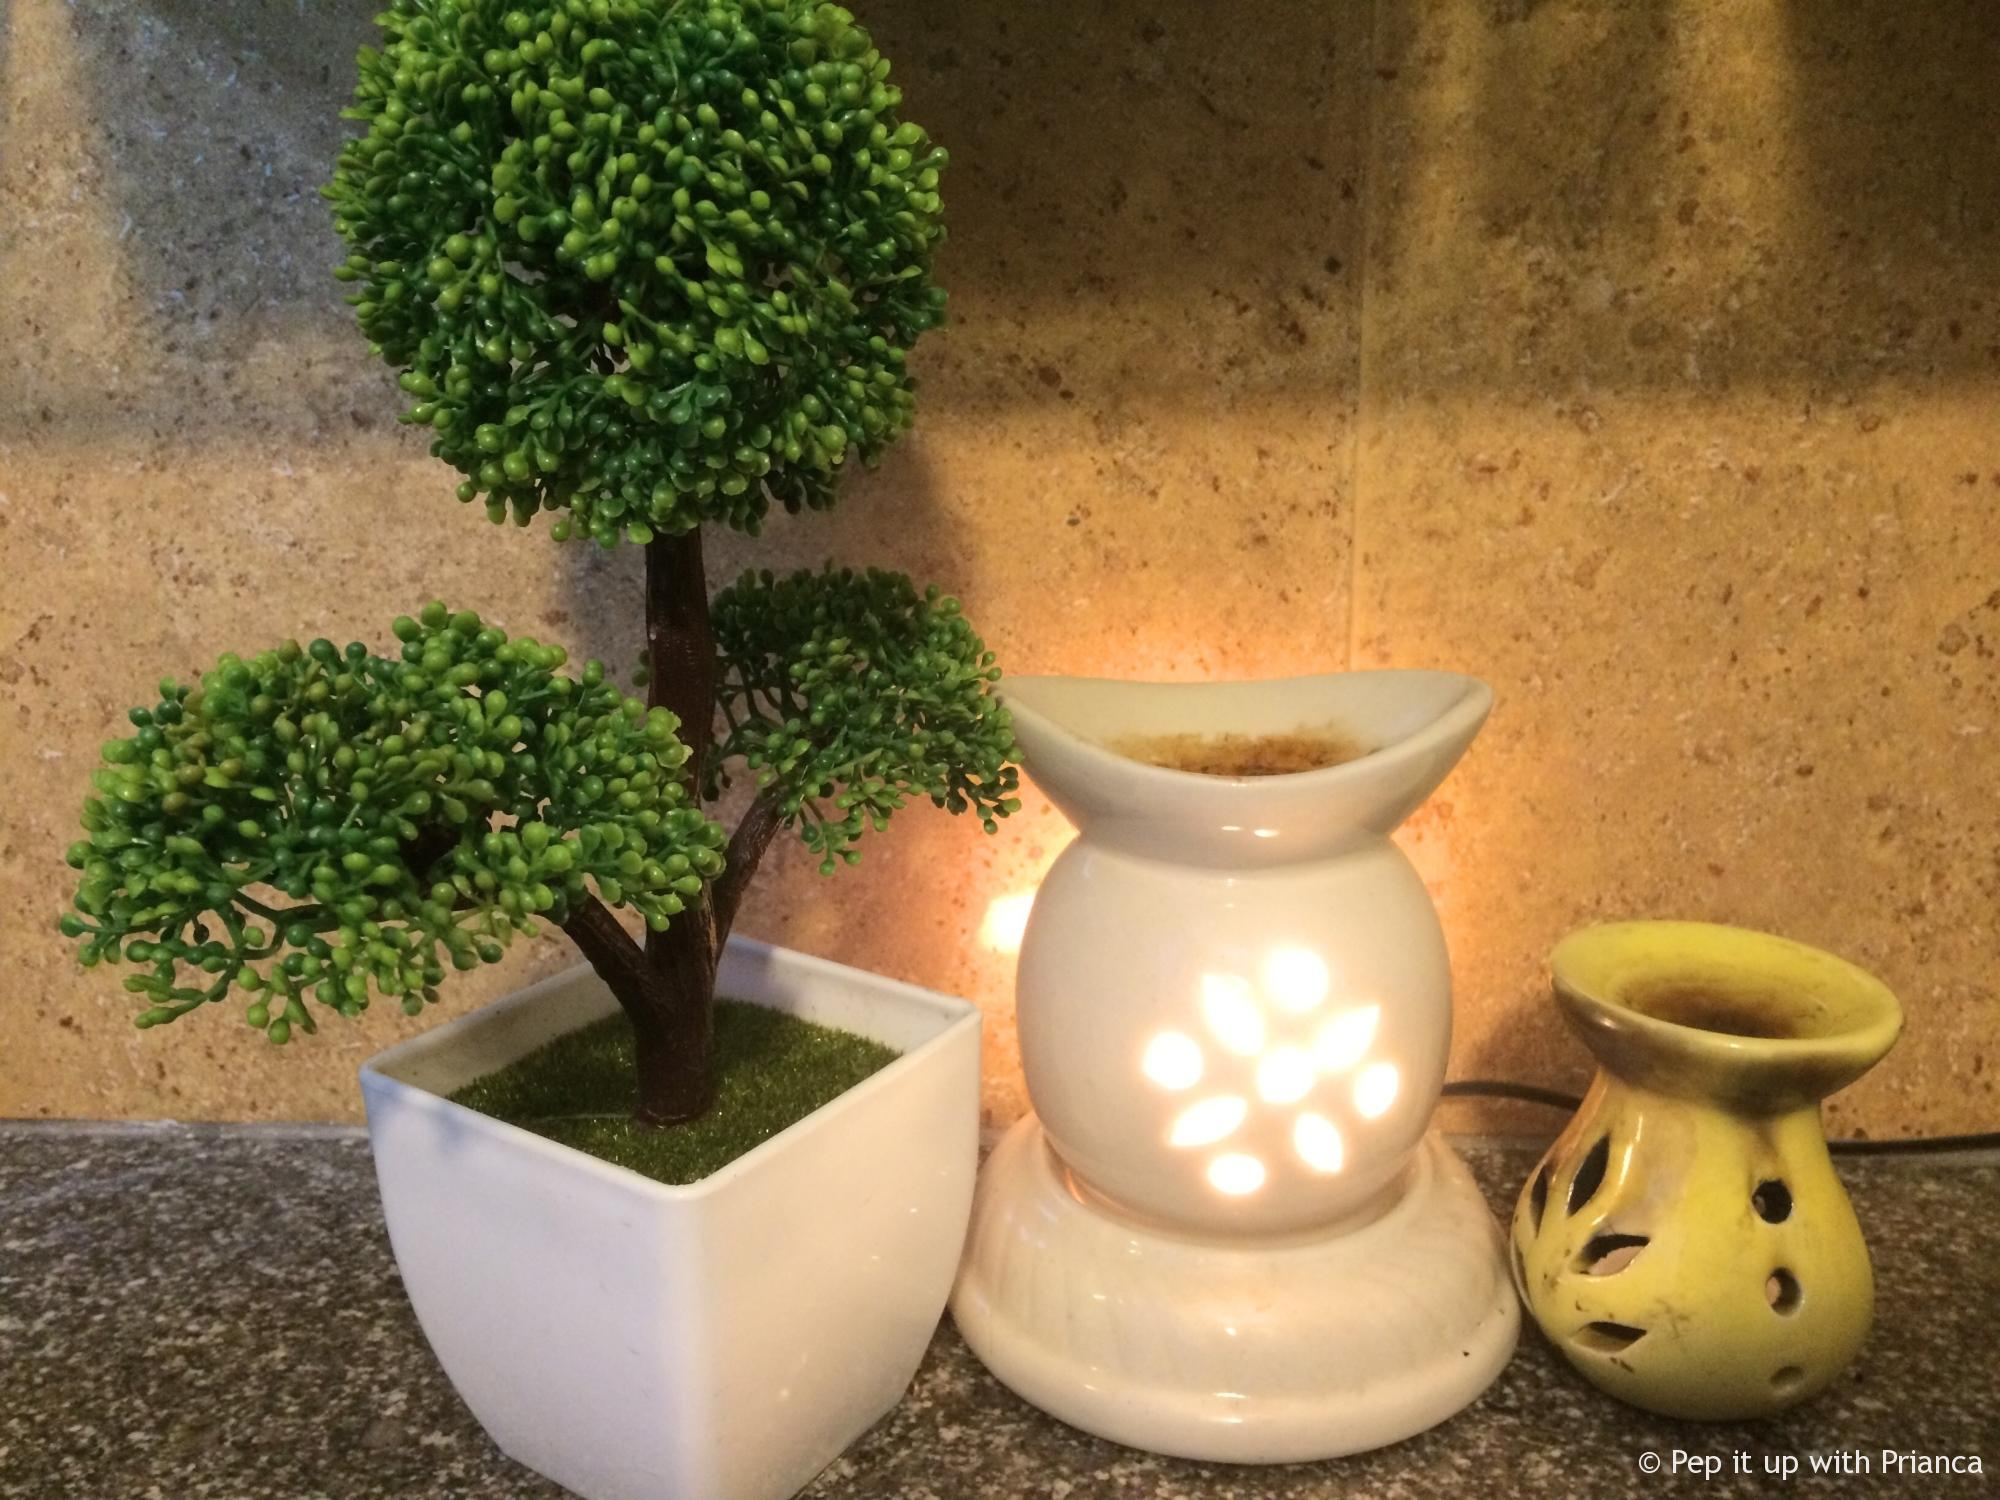 Aromatherapy DIY ideas for home image 2 - 5 DIY Aromatherapy Ideas to Make your Home Smell Heavenly